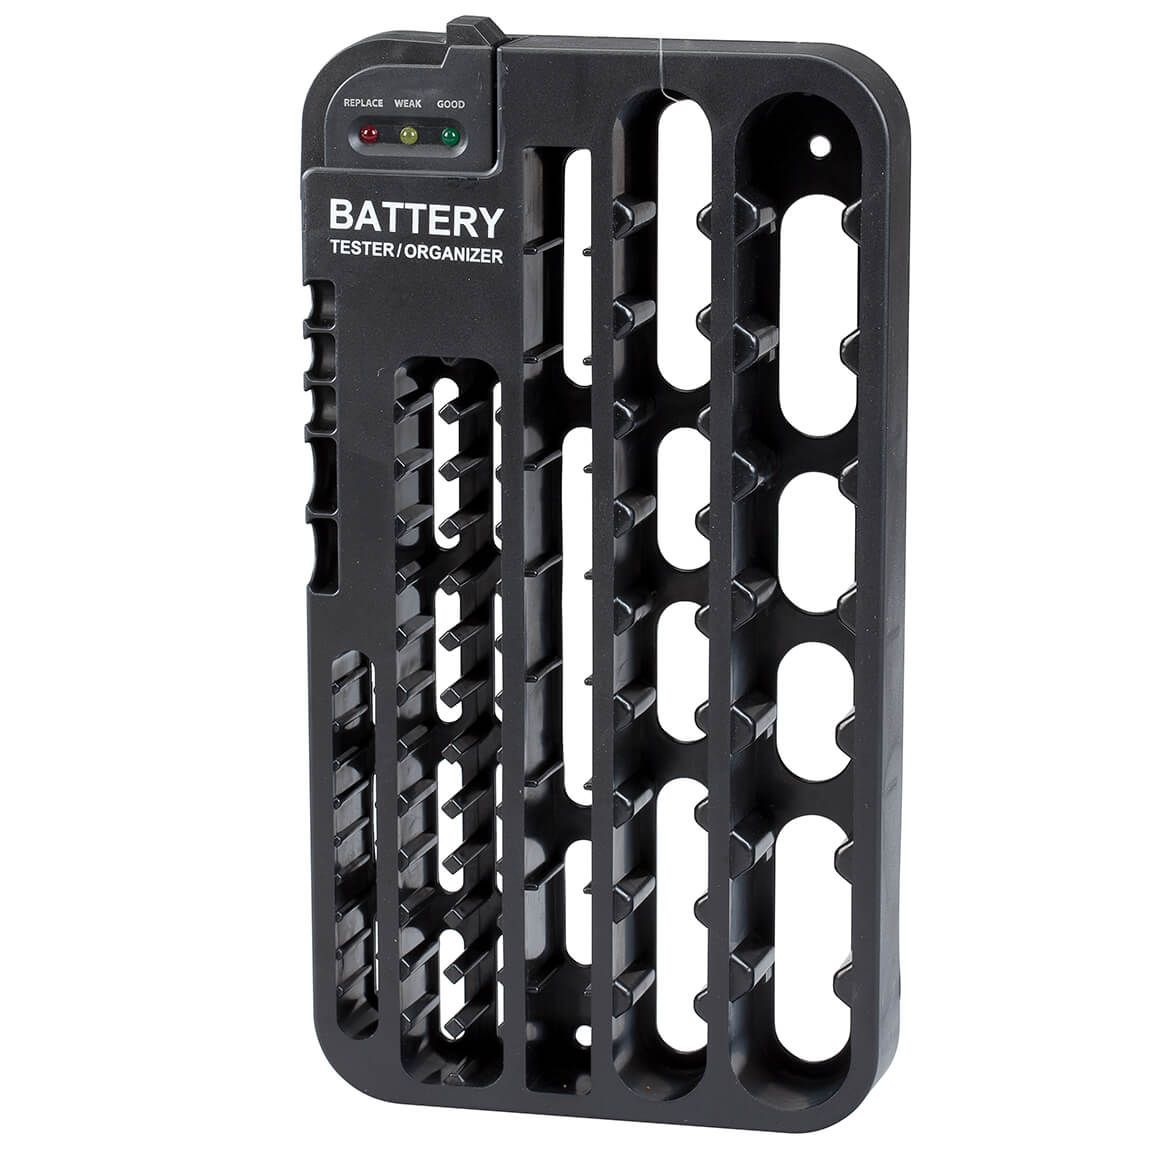 Wall Mount Battery Tester and Organizer-365959